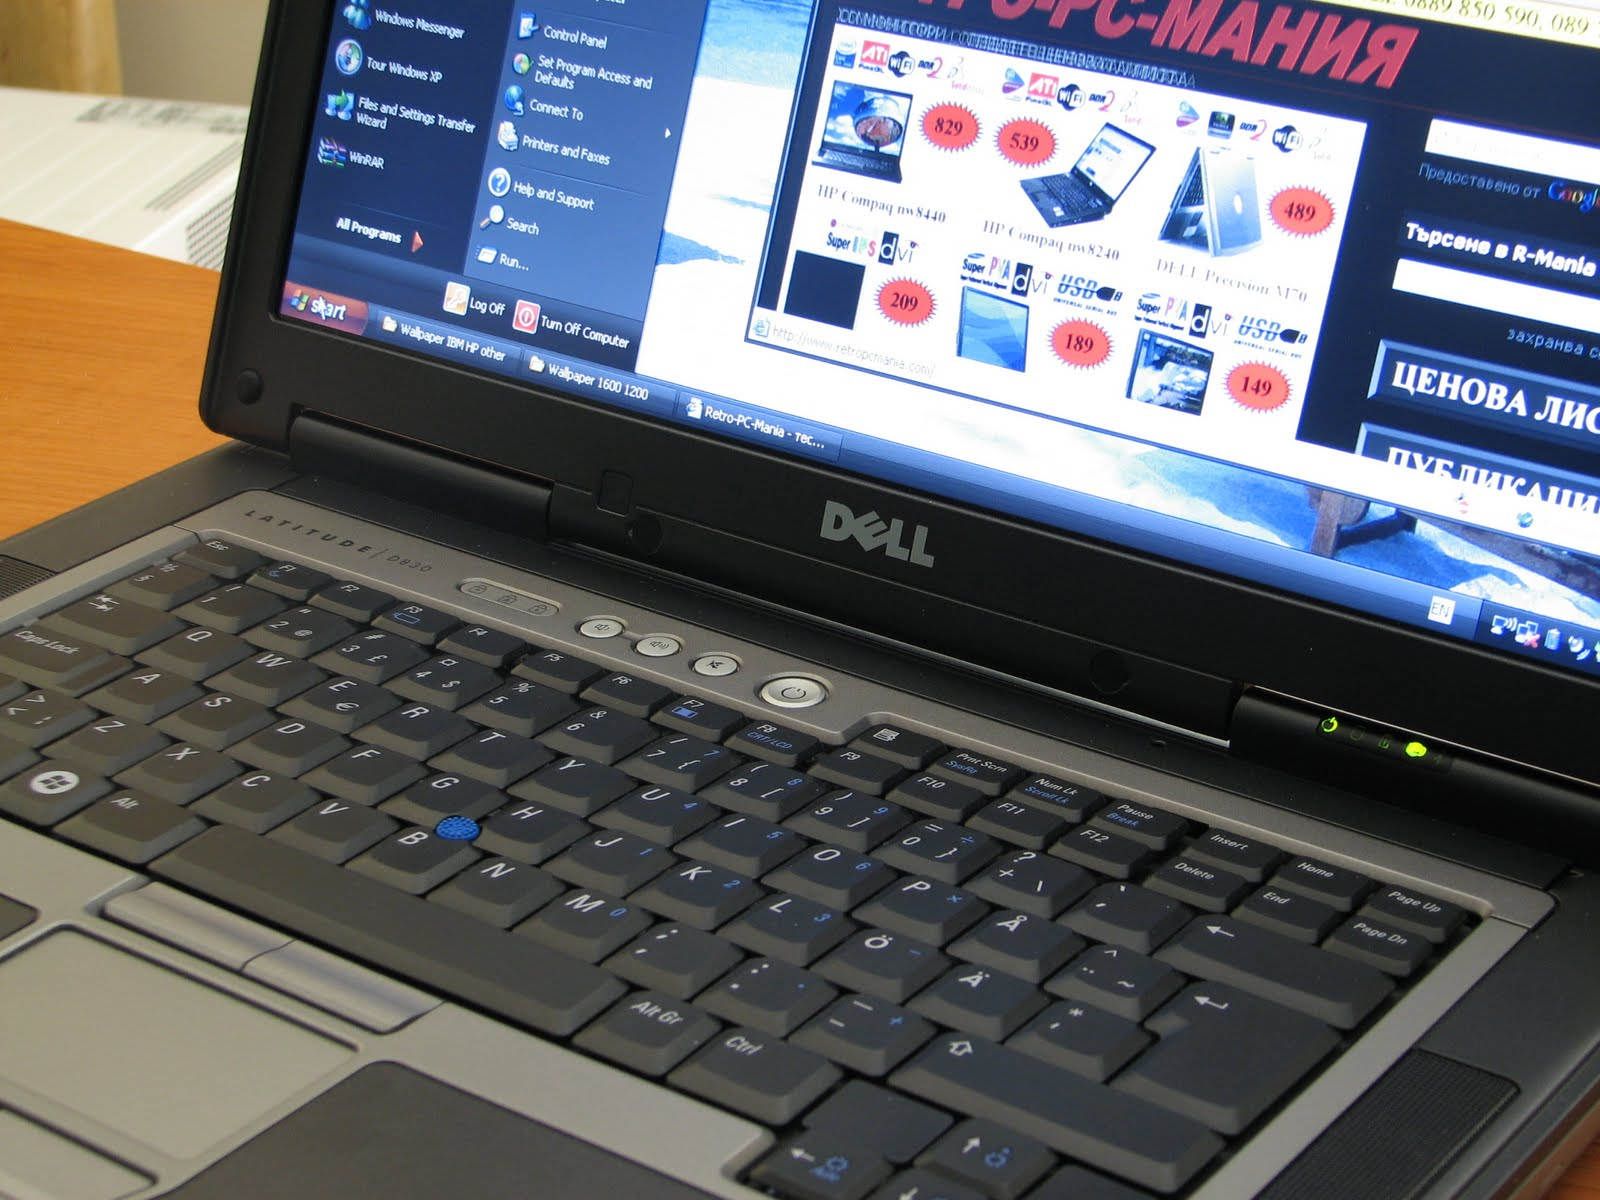 Dell latitude d830 outdoor